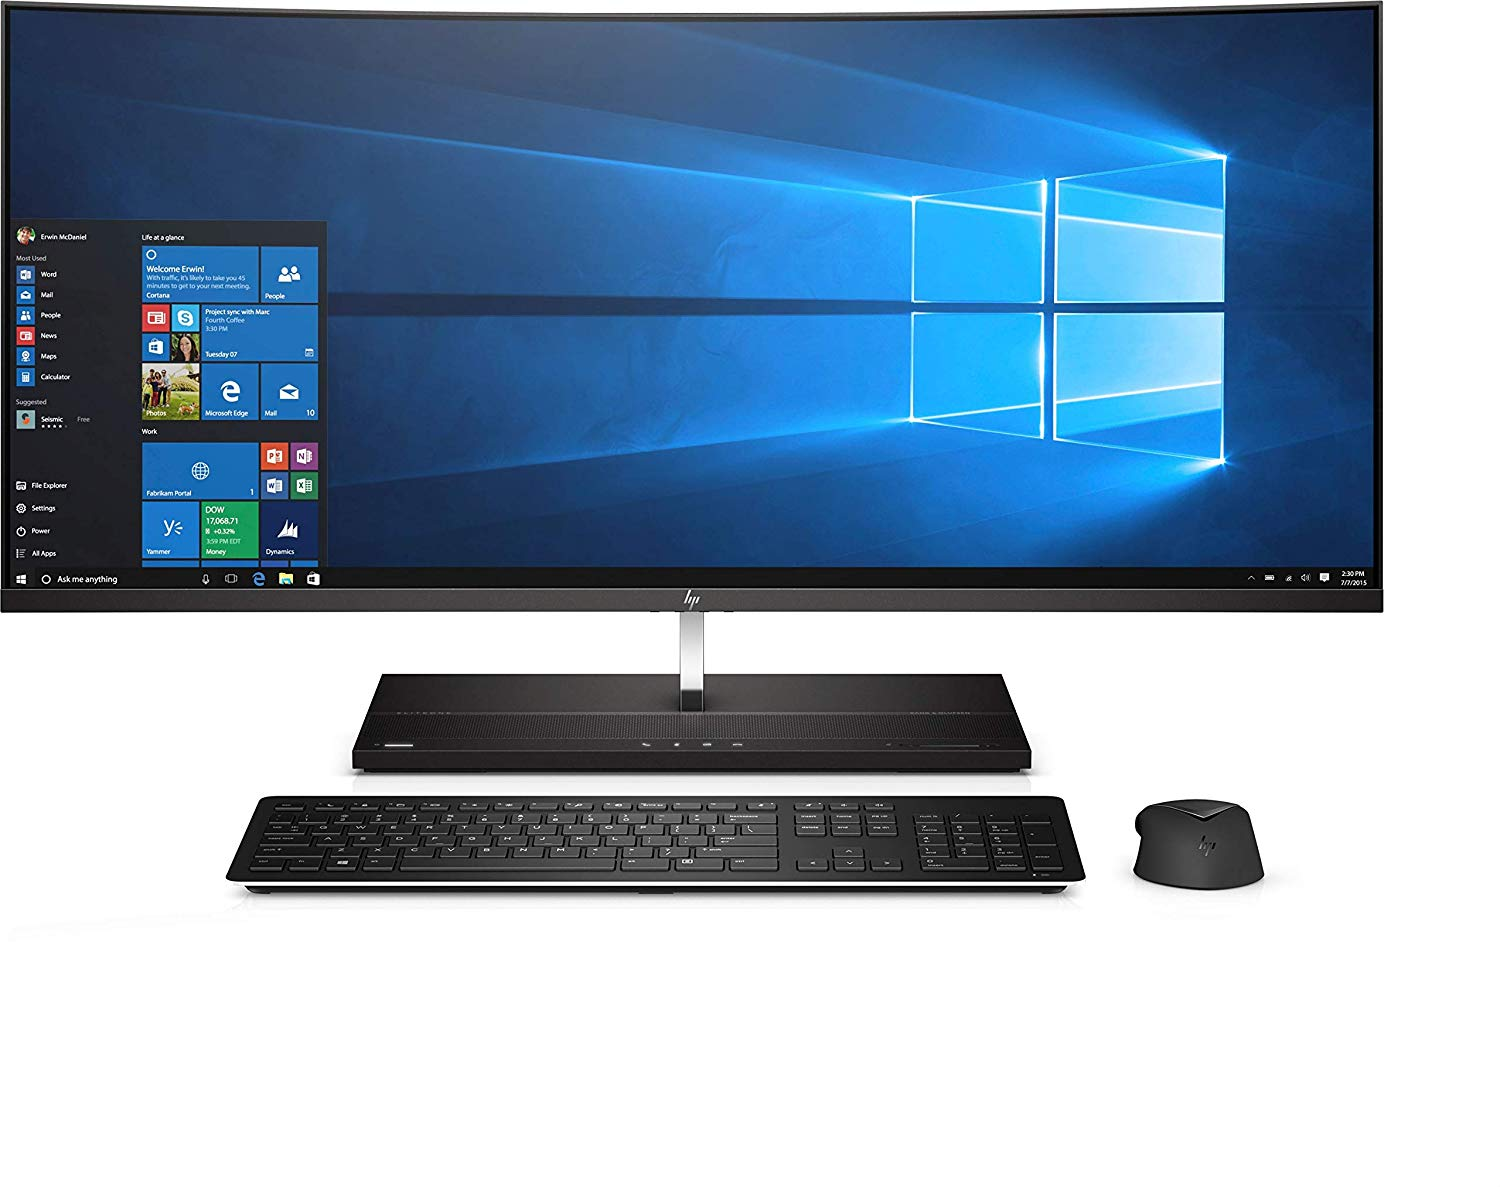 HP PC AIO ELITEONE 1000 G2 I7-8700 16GB 512GB SSD 34 WIN 10 PRO